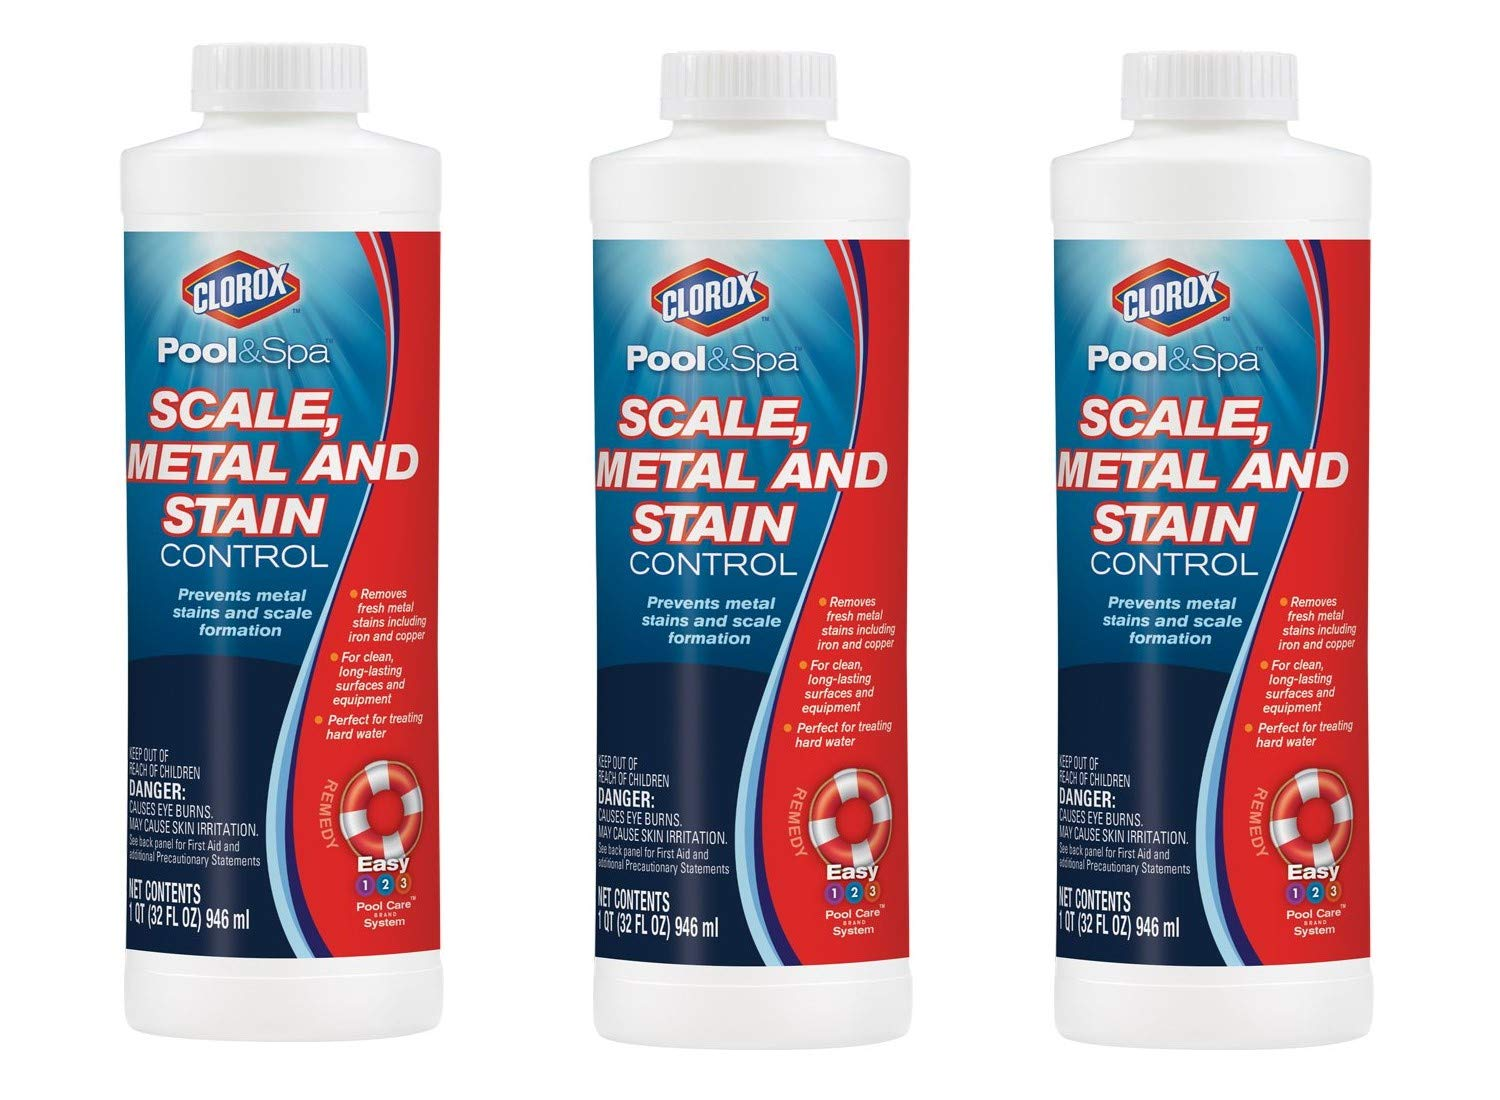 CLOROX Pool&Spa Scale, Metal and Stain Control, 1-Quart, Pack of 3 by CLOROX Pool&Spa